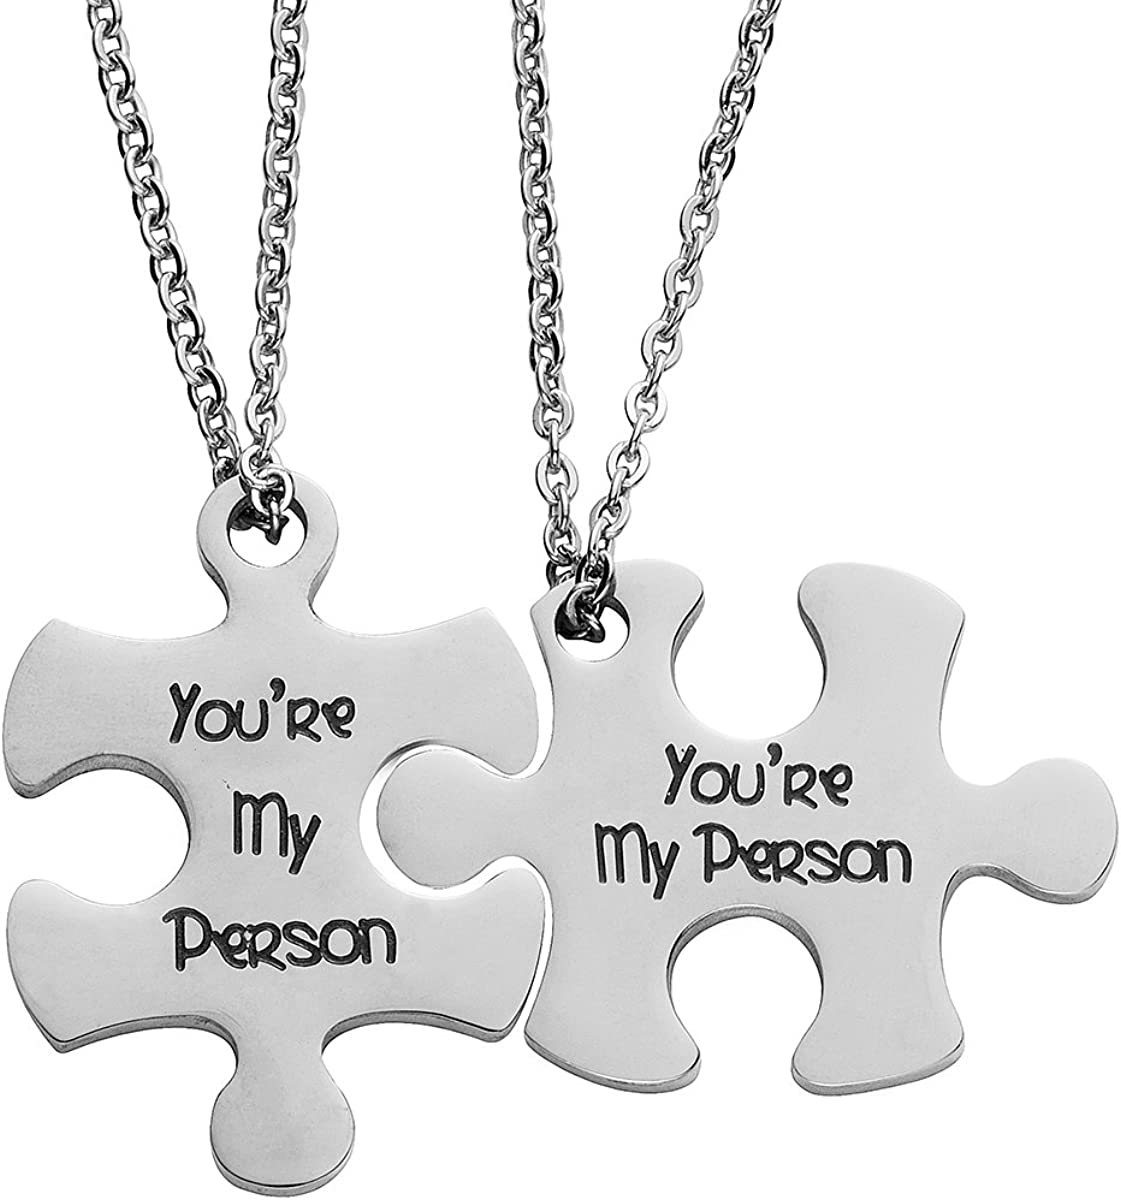 omodofo Valentine's Day His and Hers Puzzle Piece Pendant Necklace KeyChain Set Personalized Couples Stamped Chain Keyring